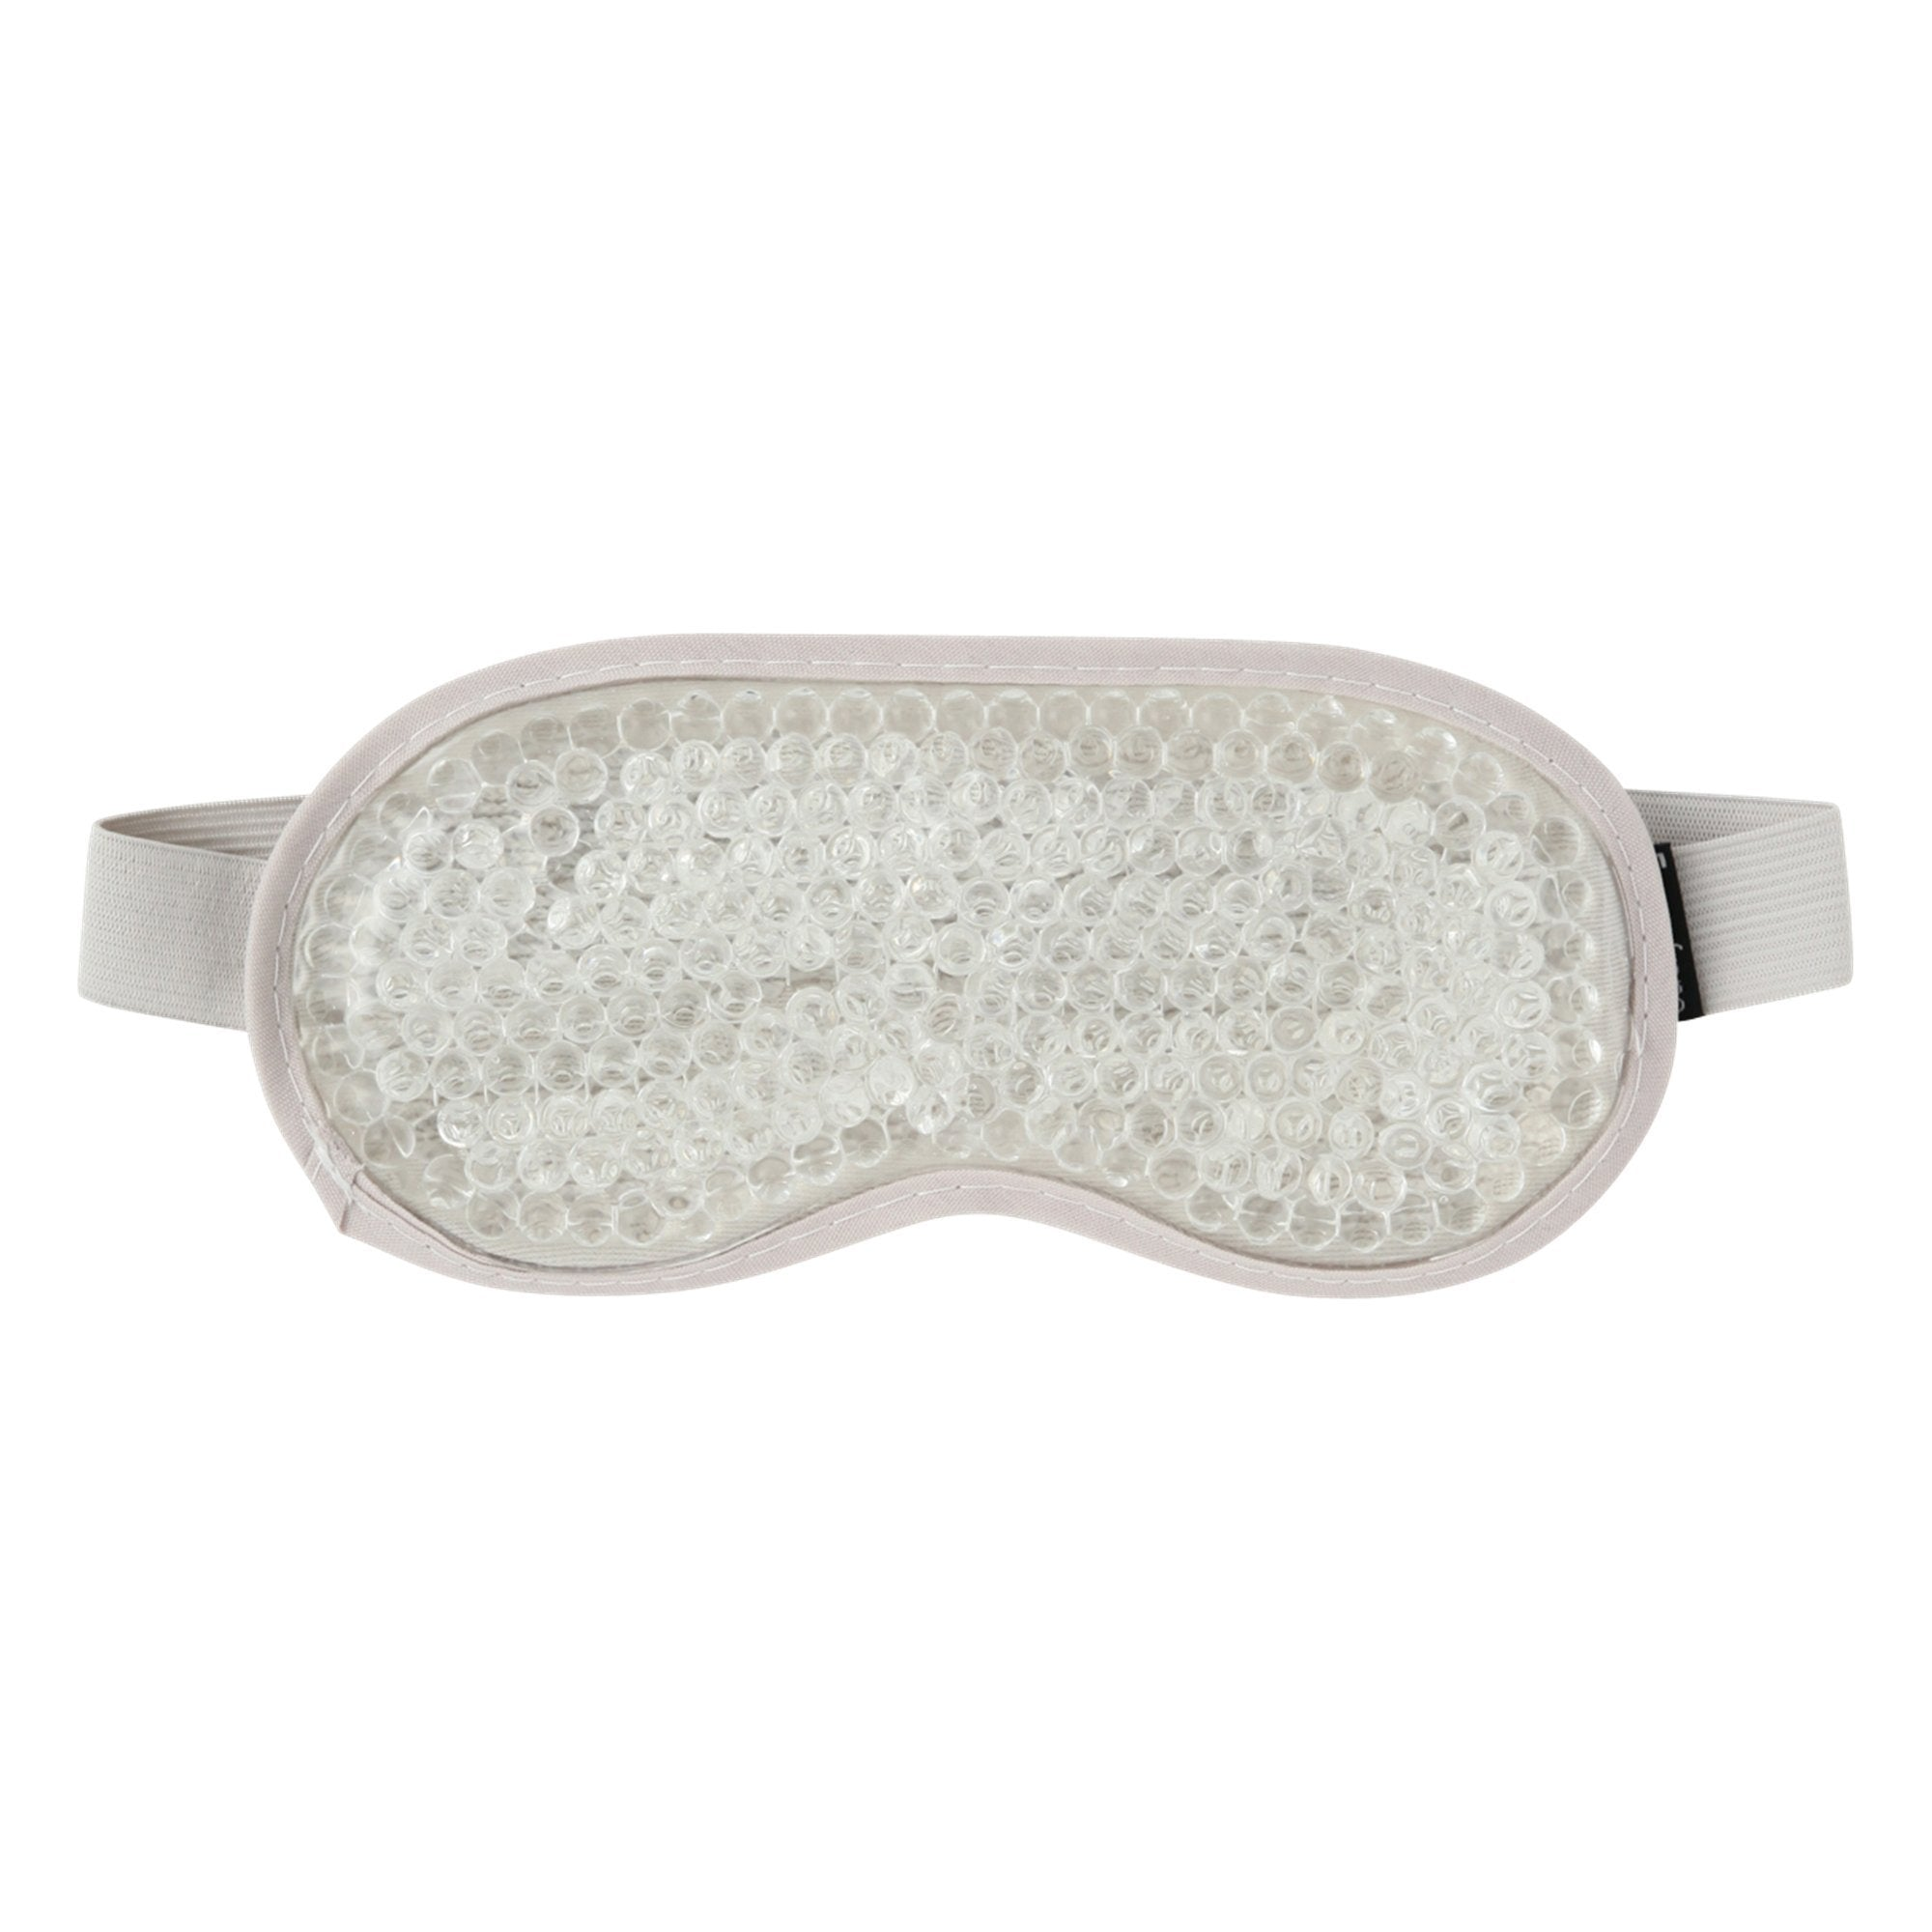 Peligri Beads Eye Pillow Mask Silver - weare-francfranc